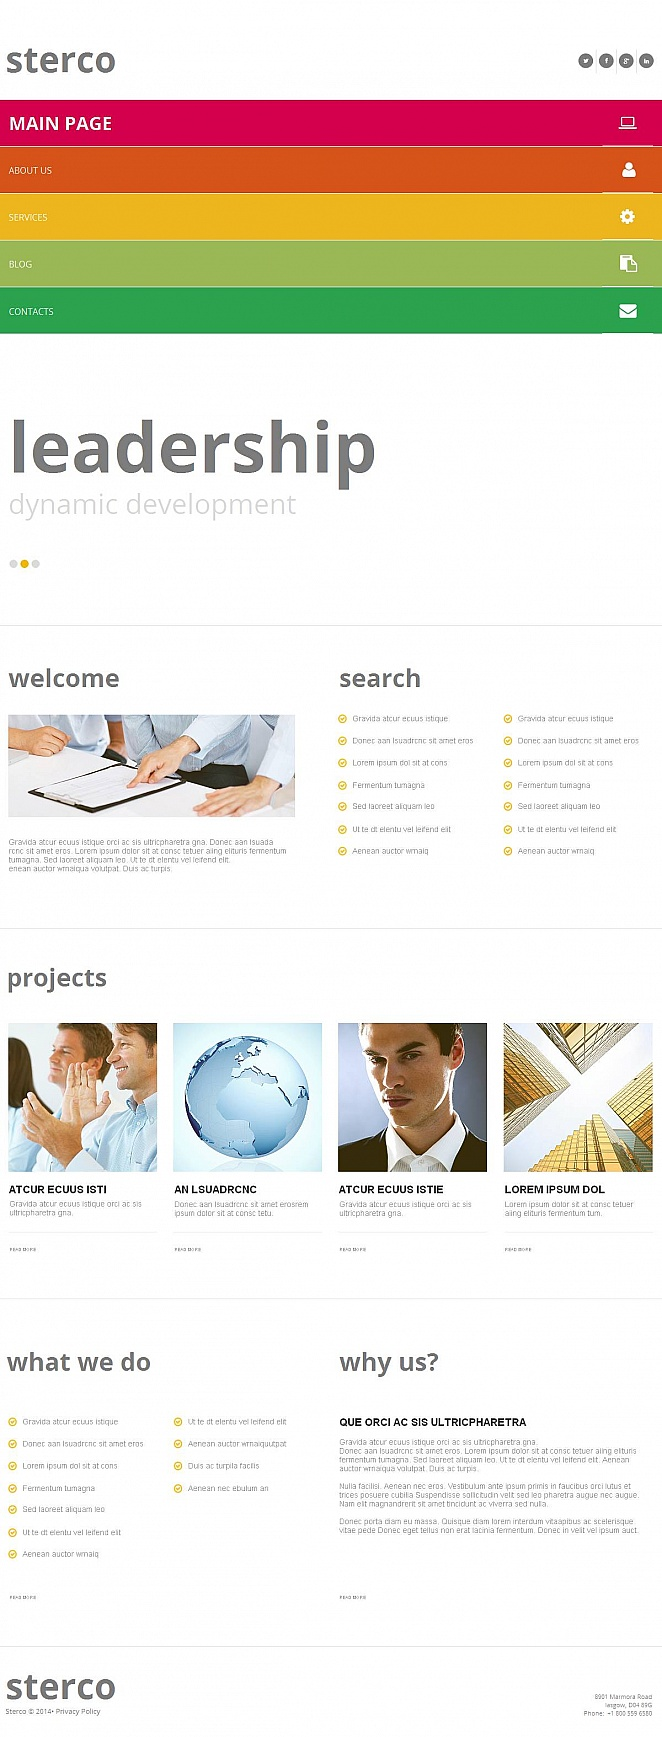 Clean Business Website Template with Rainbow Navigation Menu - image